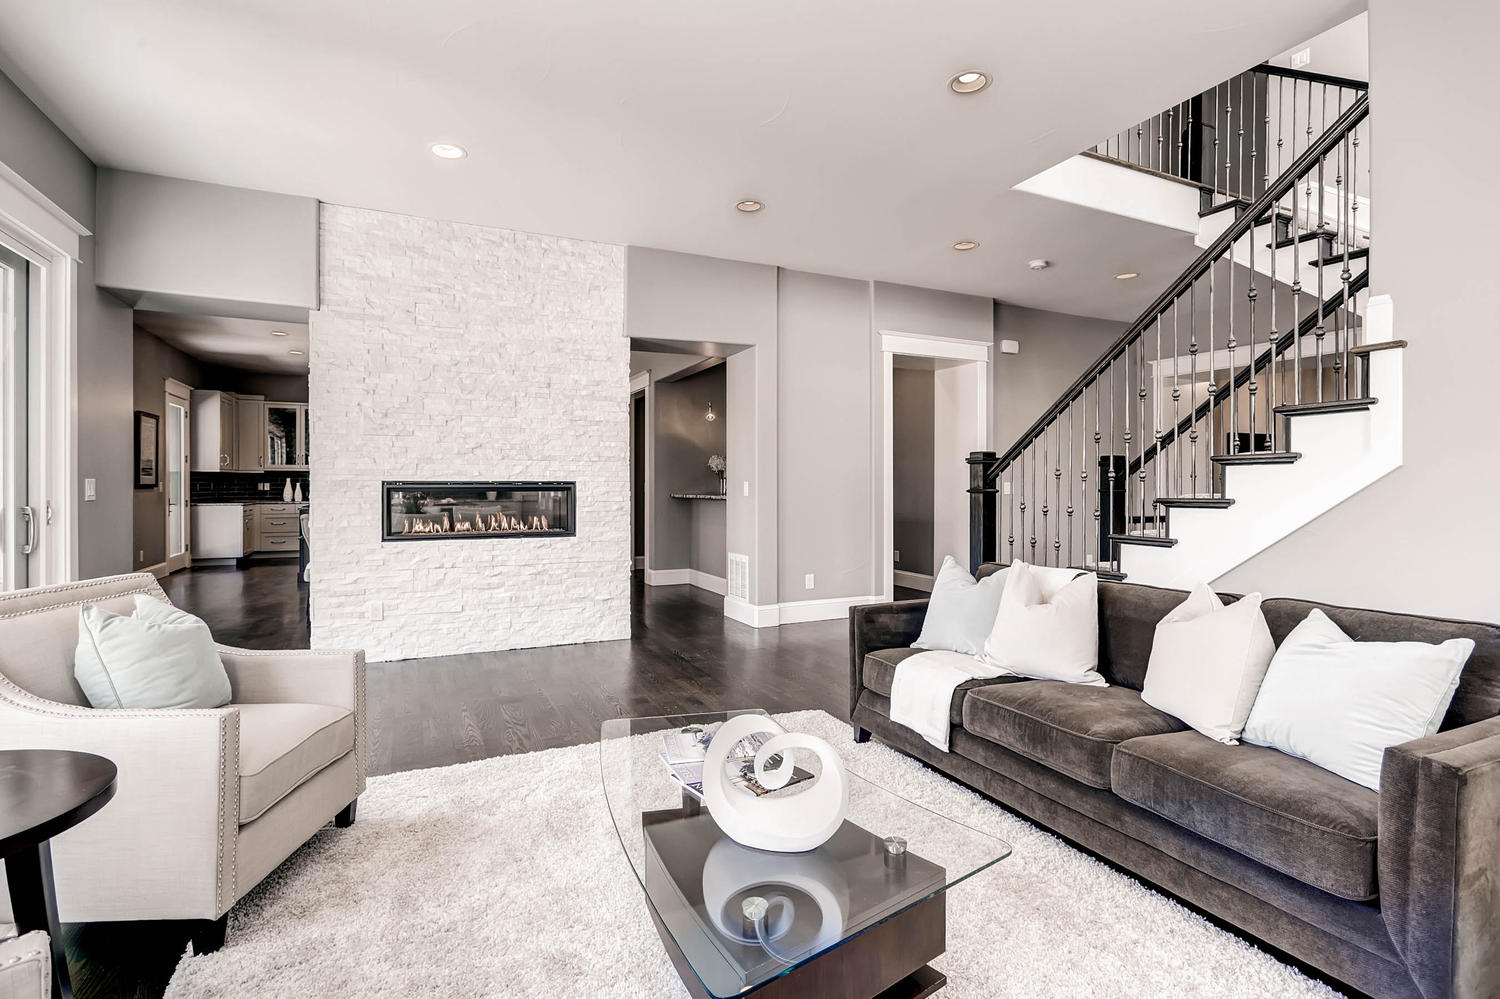 830 Leyden Street Denver Colorado Transitional Design Home Staging Den Wall  Mounted Fireplace   White Orchid Interiors